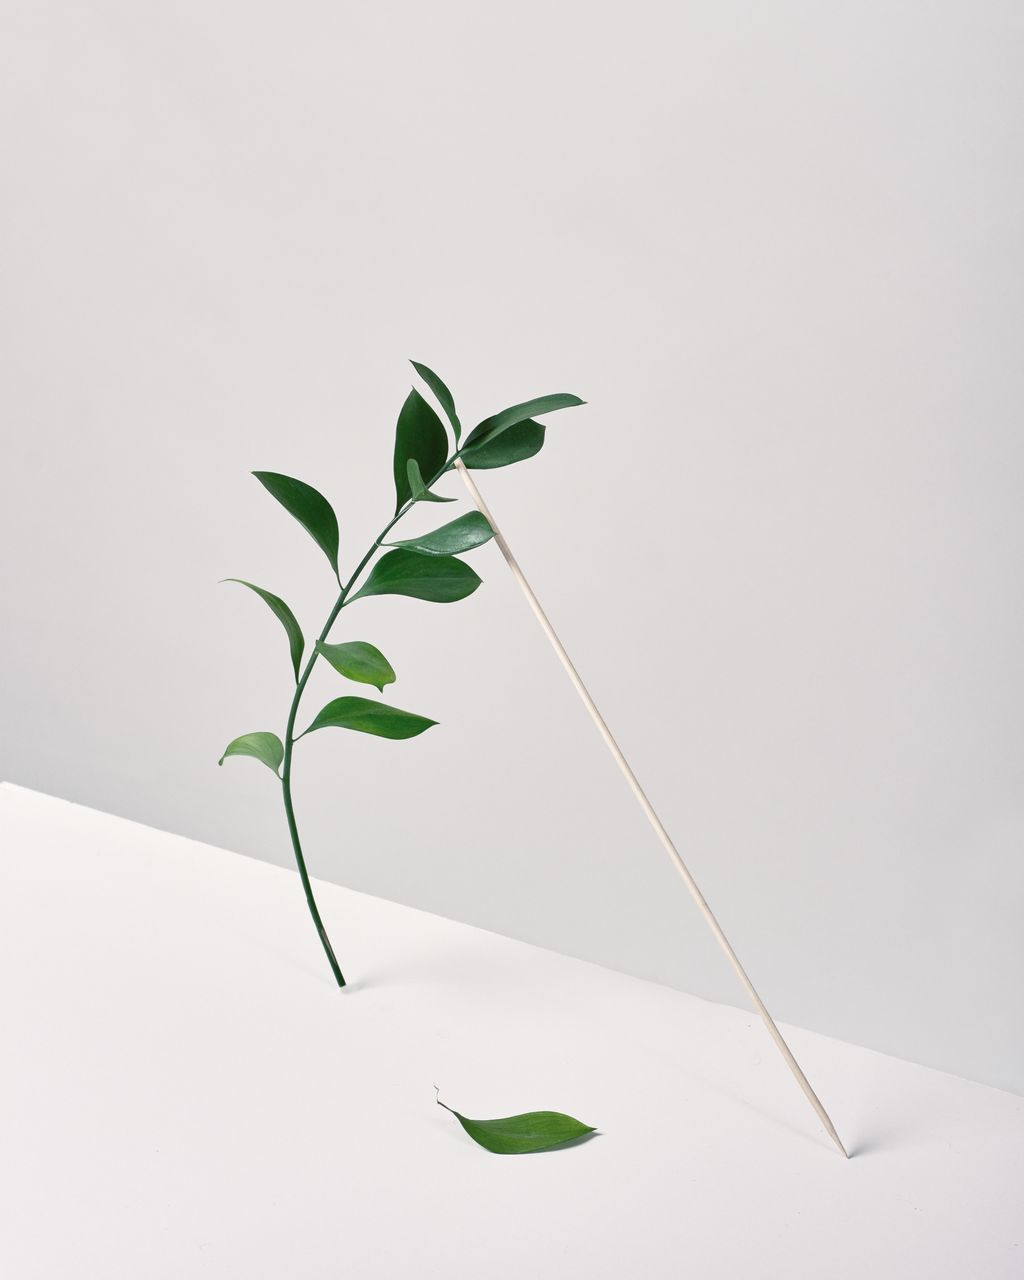 plant part, leaf, studio shot, white background, green color, plant, nature, copy space, growth, indoors, no people, beauty in nature, close-up, vulnerability, fragility, white color, plant stem, cut out, botany, leaves